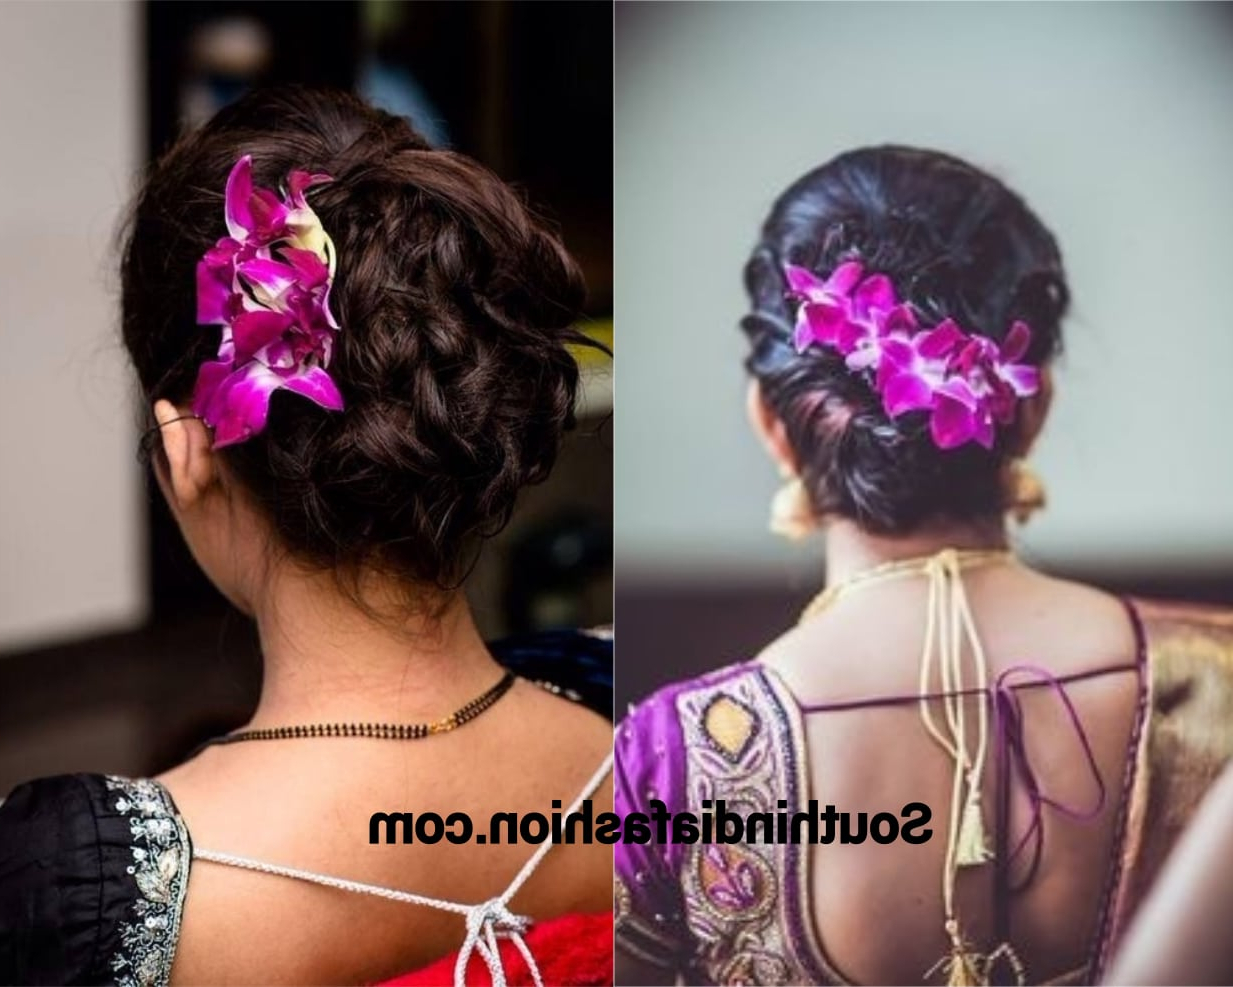 Indian Wedding Bun Hairstyle With Flowers And Gajra! Intended For Famous Side Bun Prom Hairstyles With Orchids (Gallery 7 of 20)